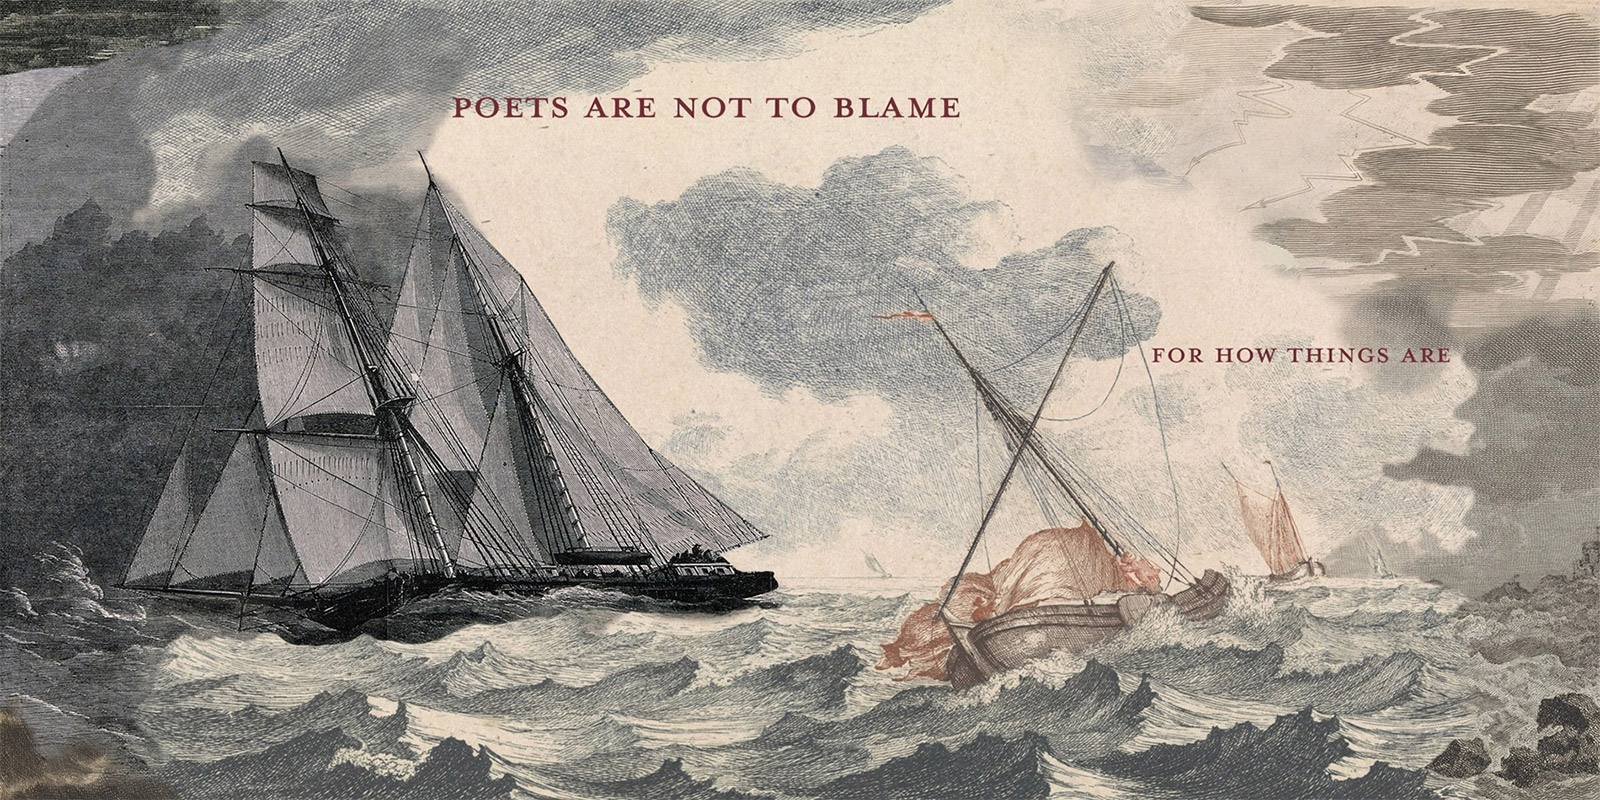 A painting of two ships in the ocean during the middle of a turbulent storm.